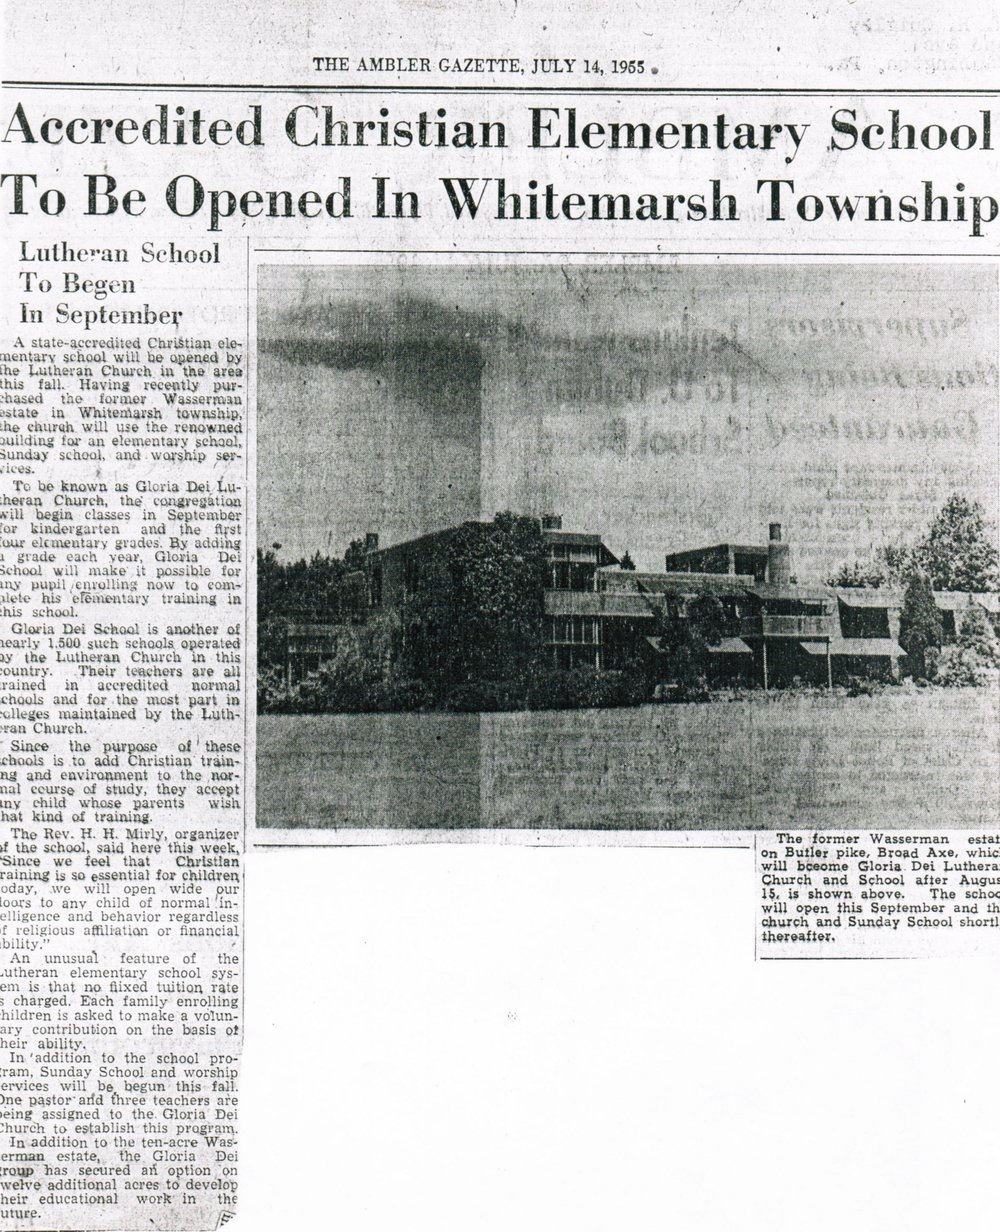 1955 Ambler Gazette Article (click to zoom)